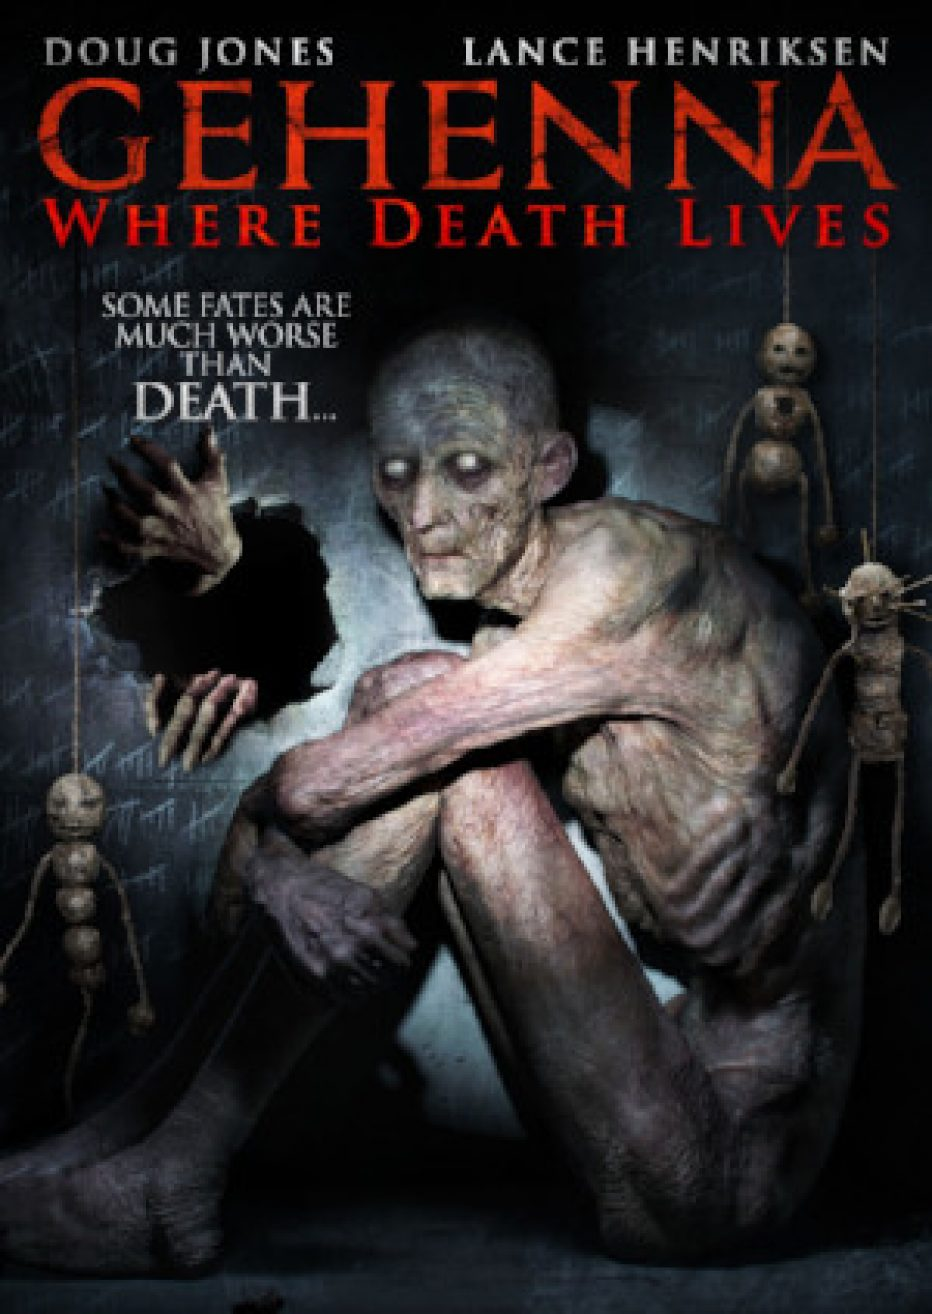 THE SHAPE OF WATER's Doug Jones in GEHENNA : WHERE DEATH LIVES – in theaters and On Demand May 4